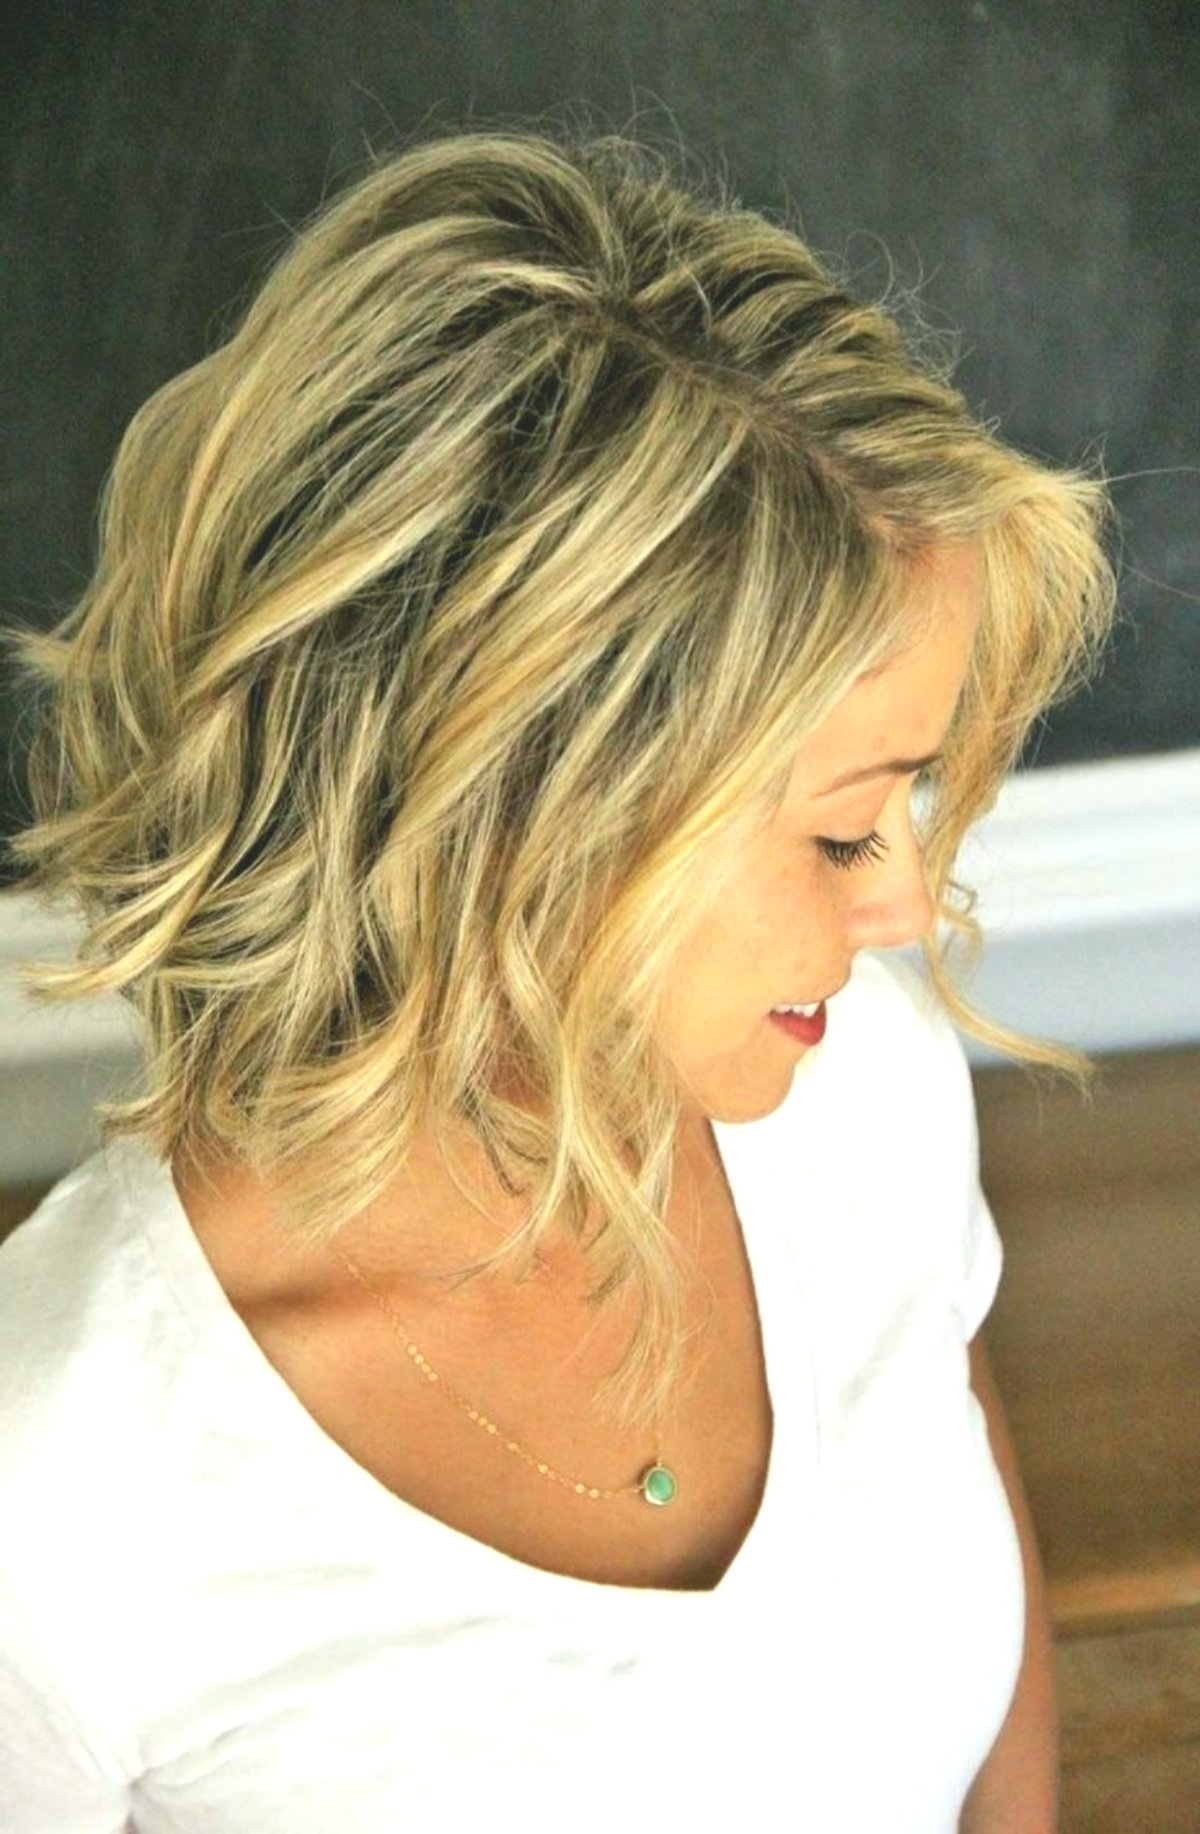 Fancy Hairstyles Brown Gallery-Inspirational Hairstyles Brown Reviews